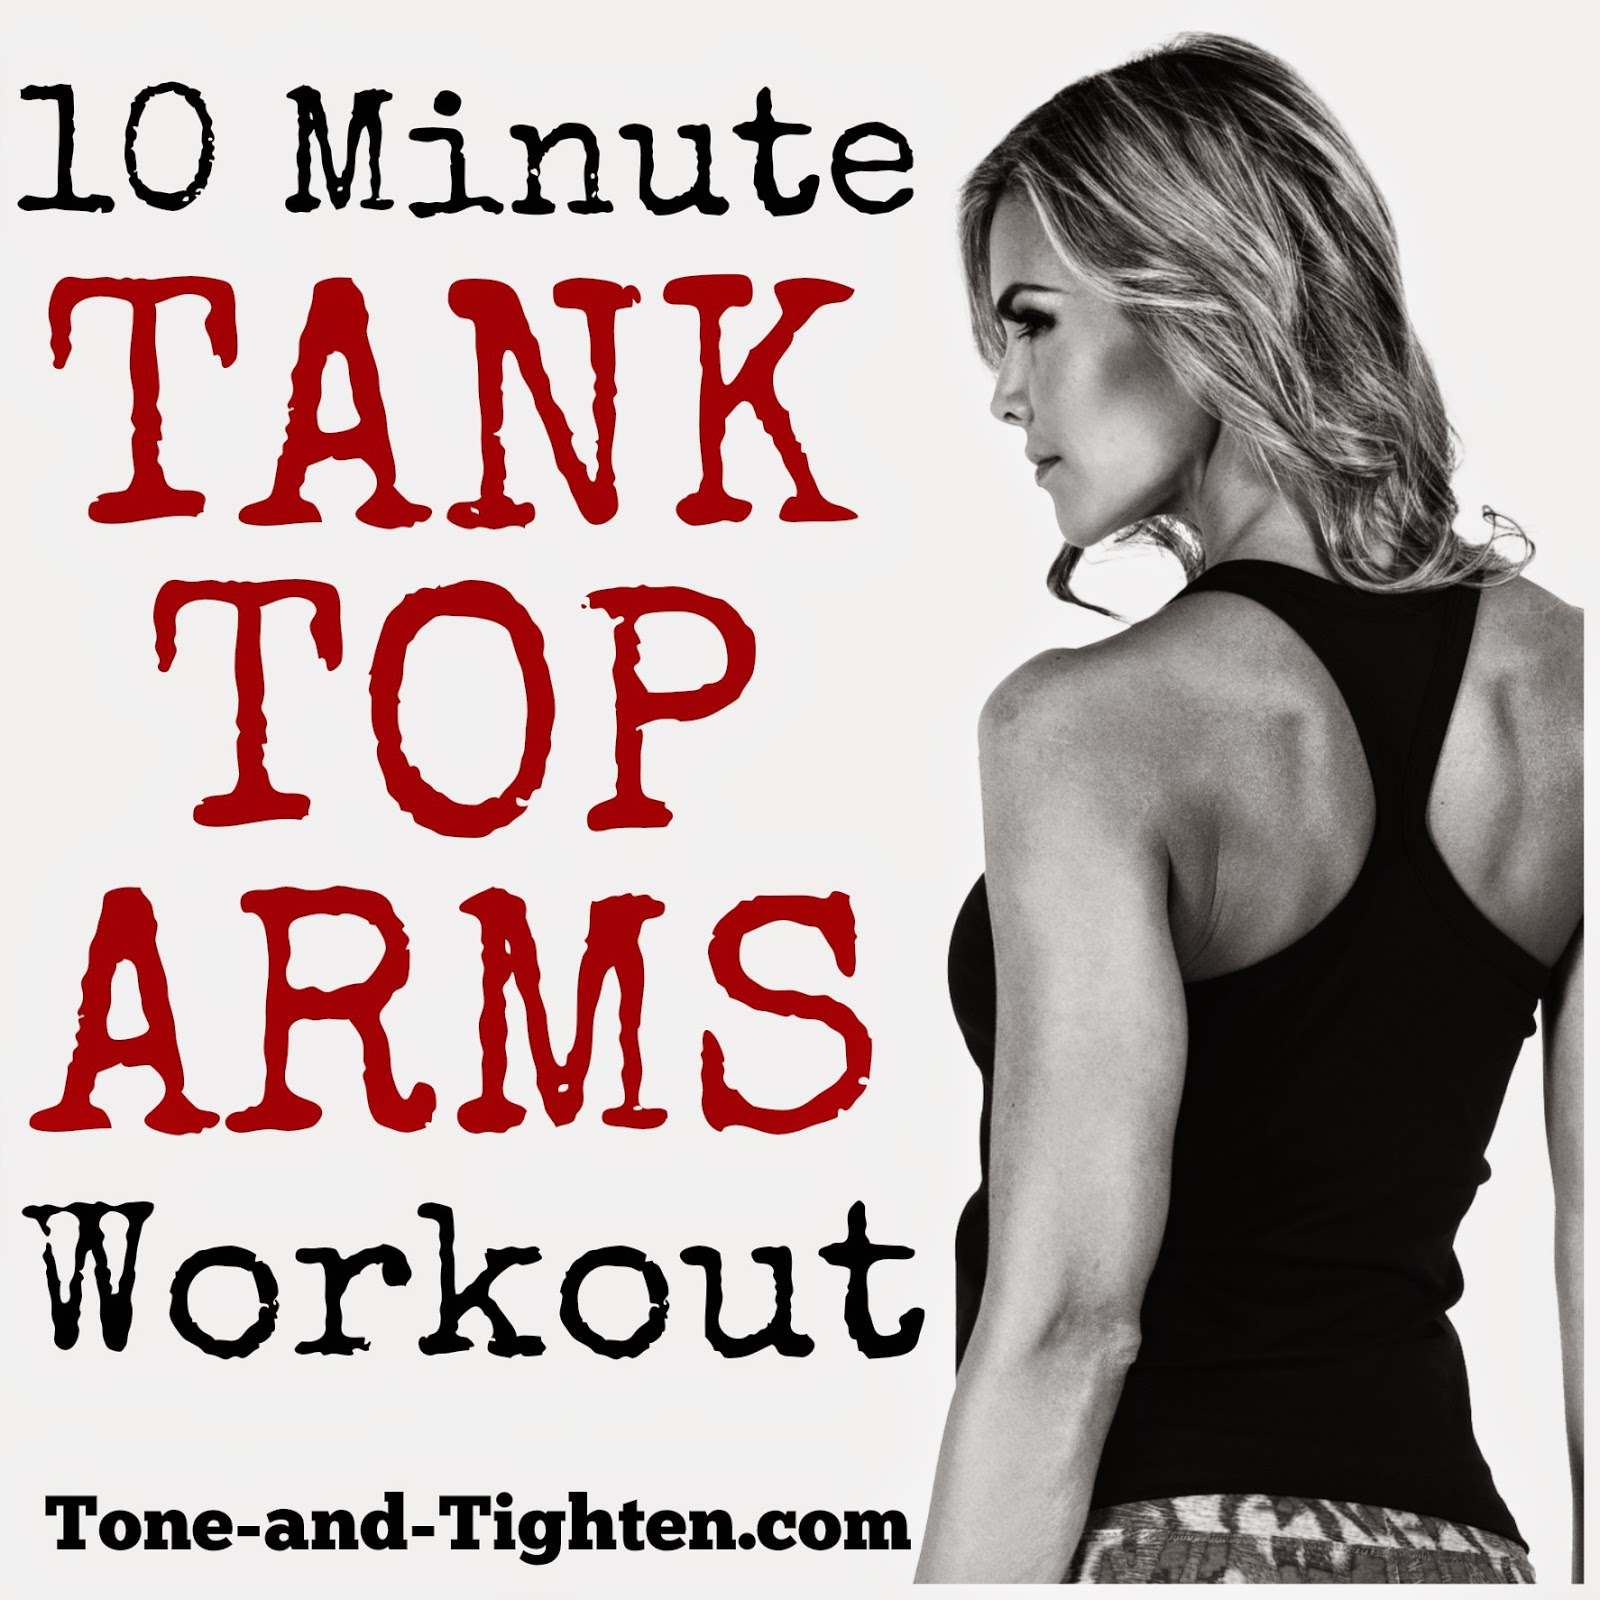 https://tone-and-tighten.com/2014/05/ten-minute-tank-top-arms-all-you-need-is-10-minutes-to-be-ready-to-go-sleeveless-this-summer.html